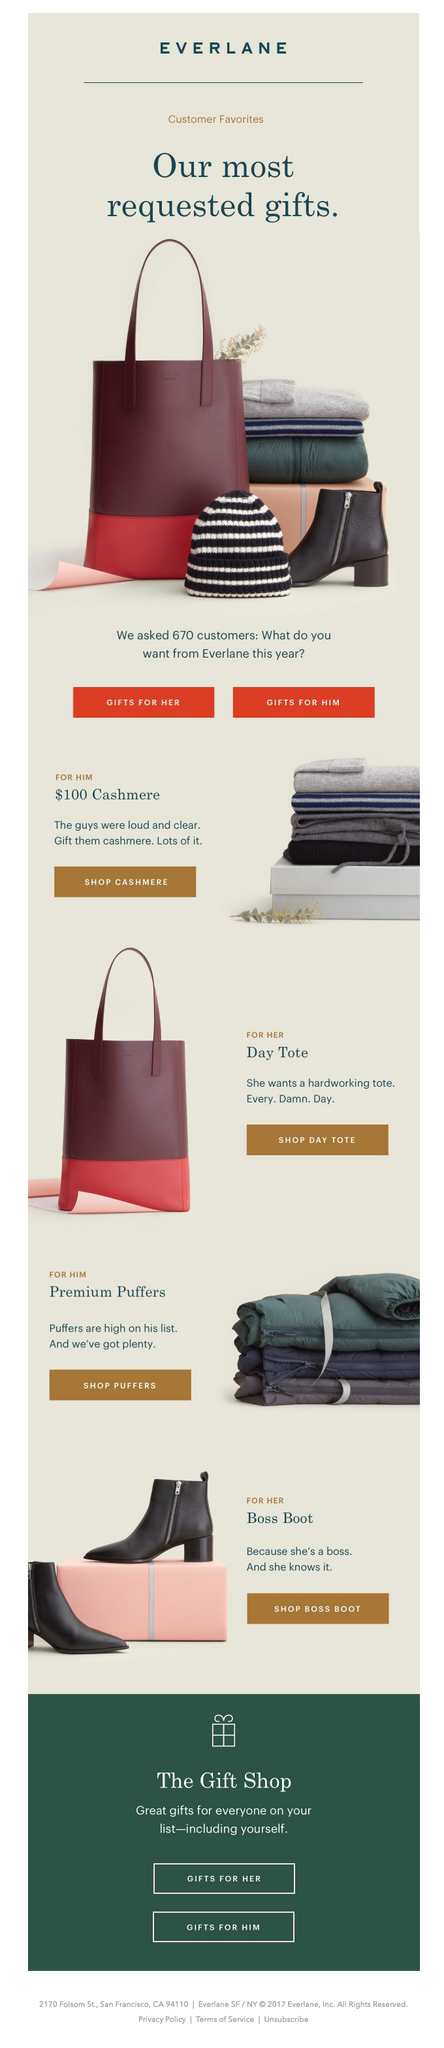 everlane good holiday email marketing example